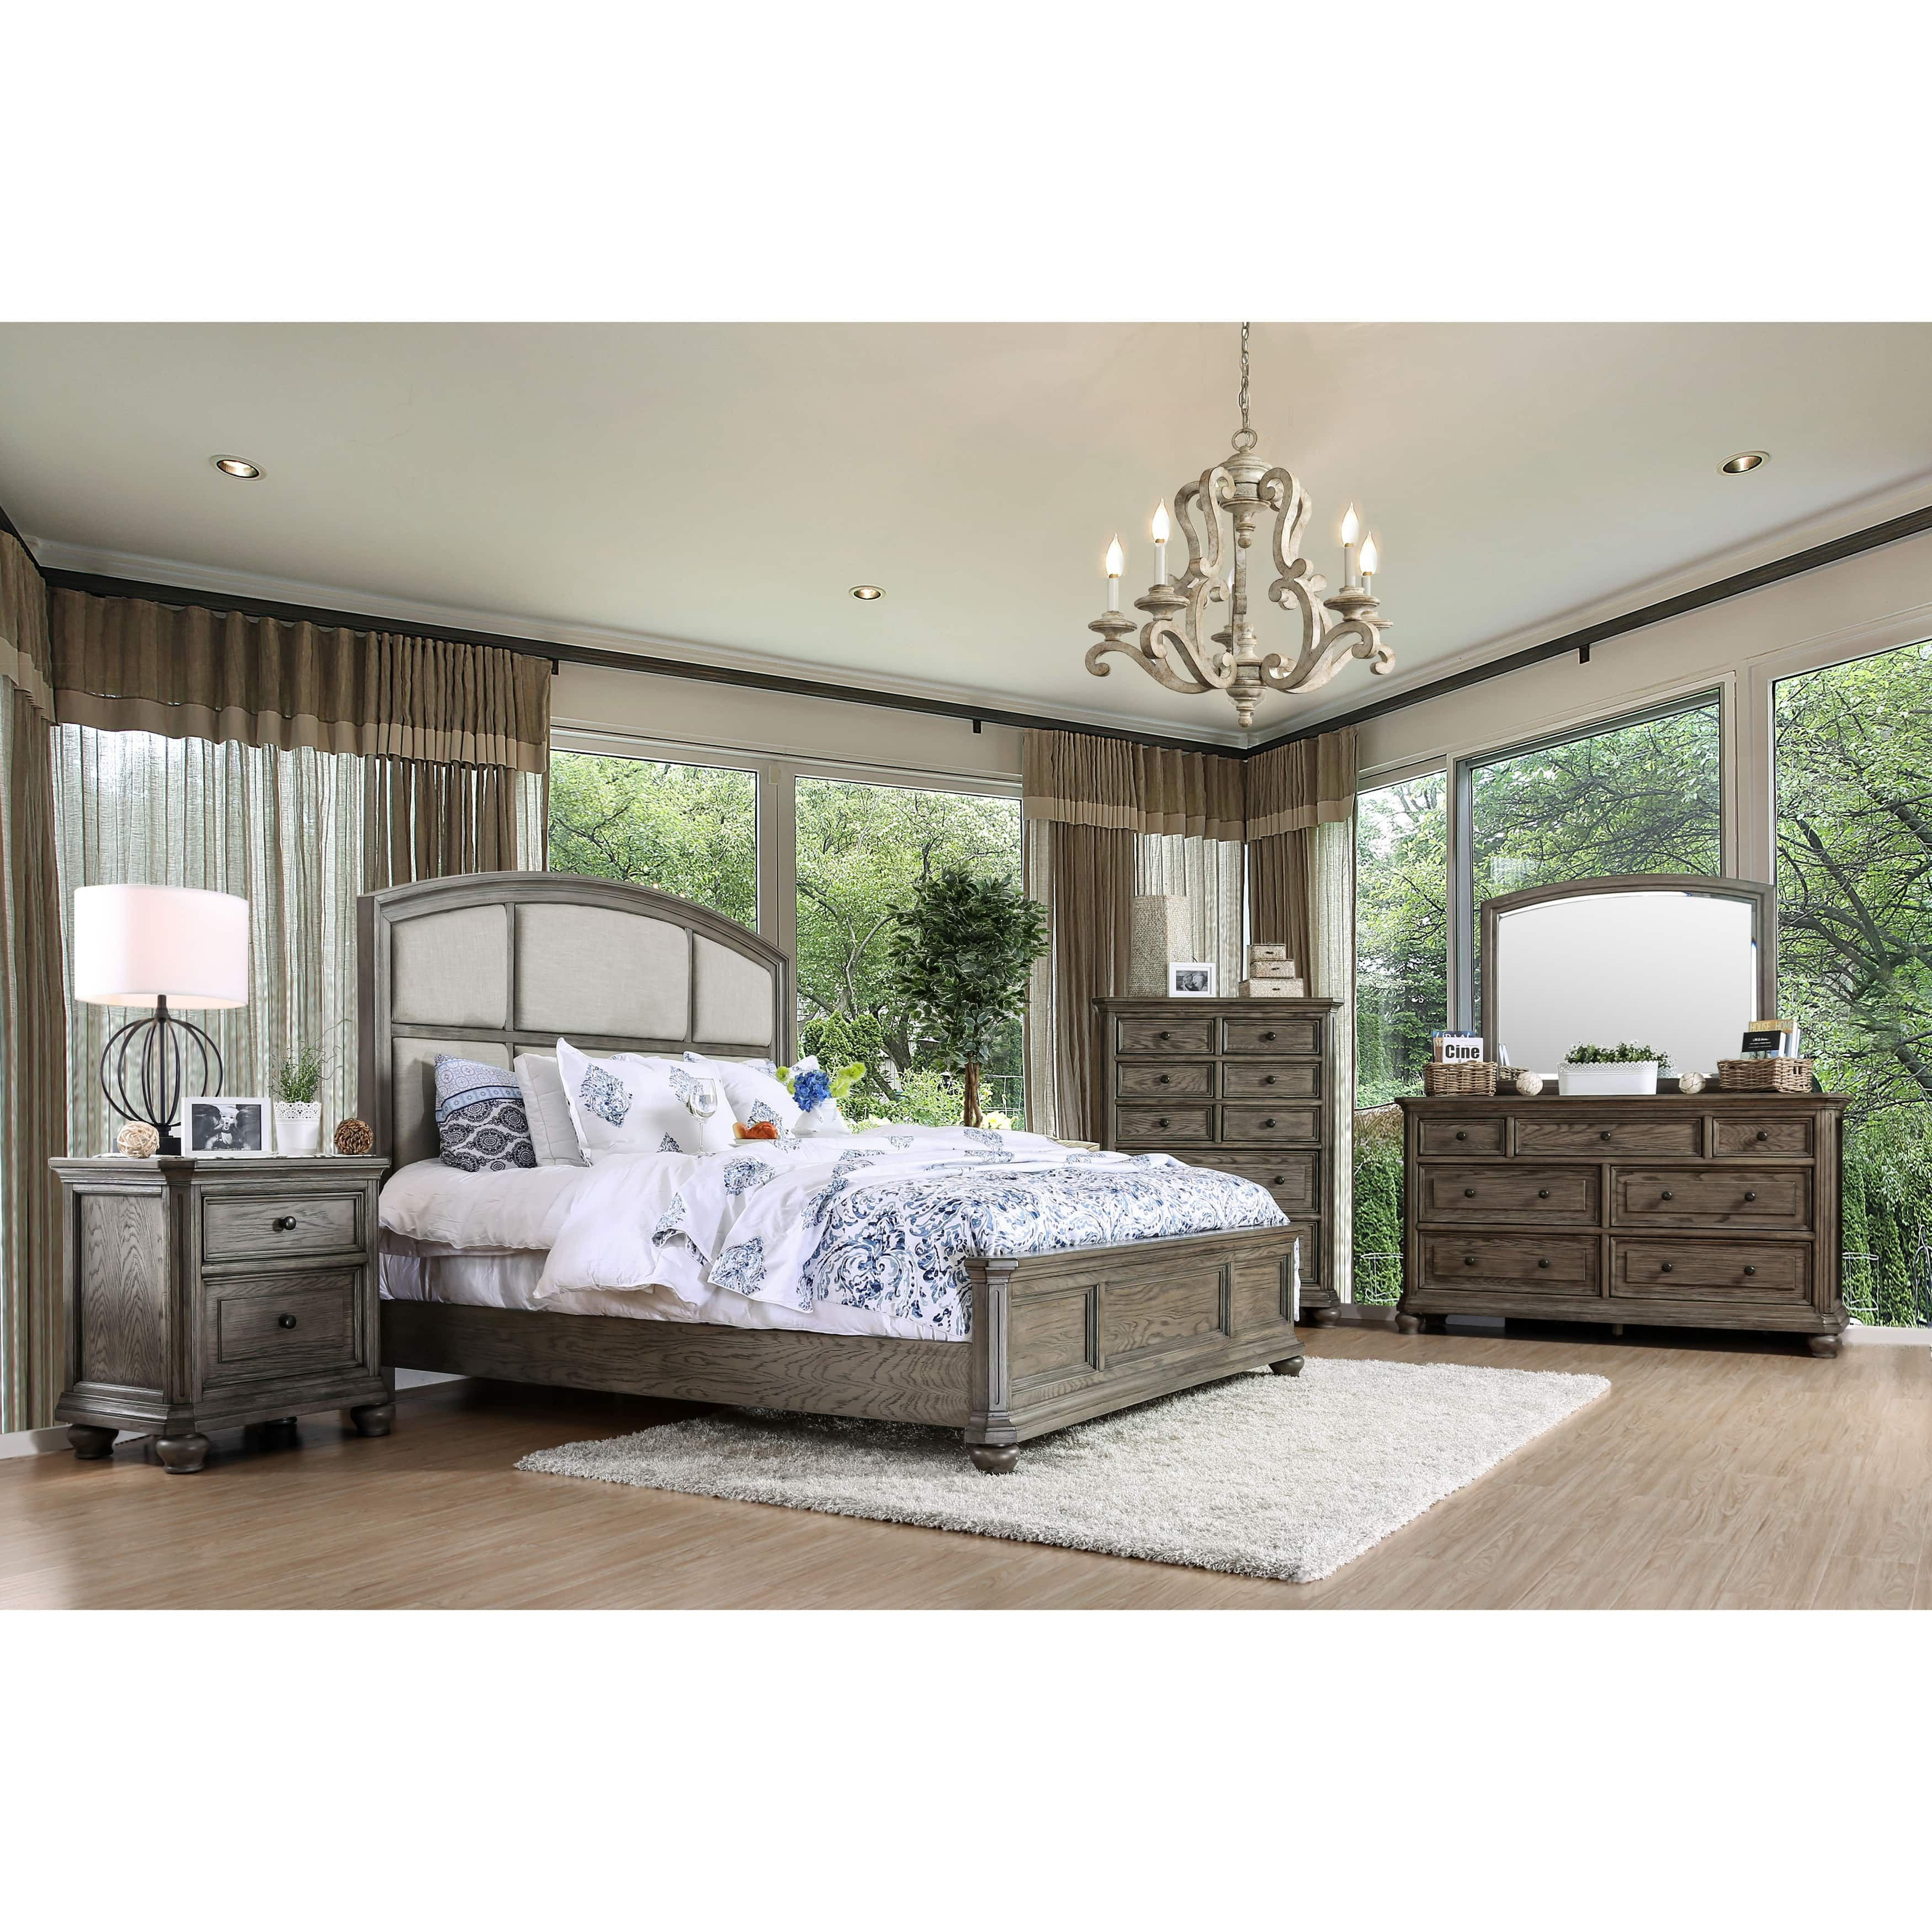 Cheap Bedroom Set Online Fresh Line Shopping Bedding Furniture Electronics Jewelry